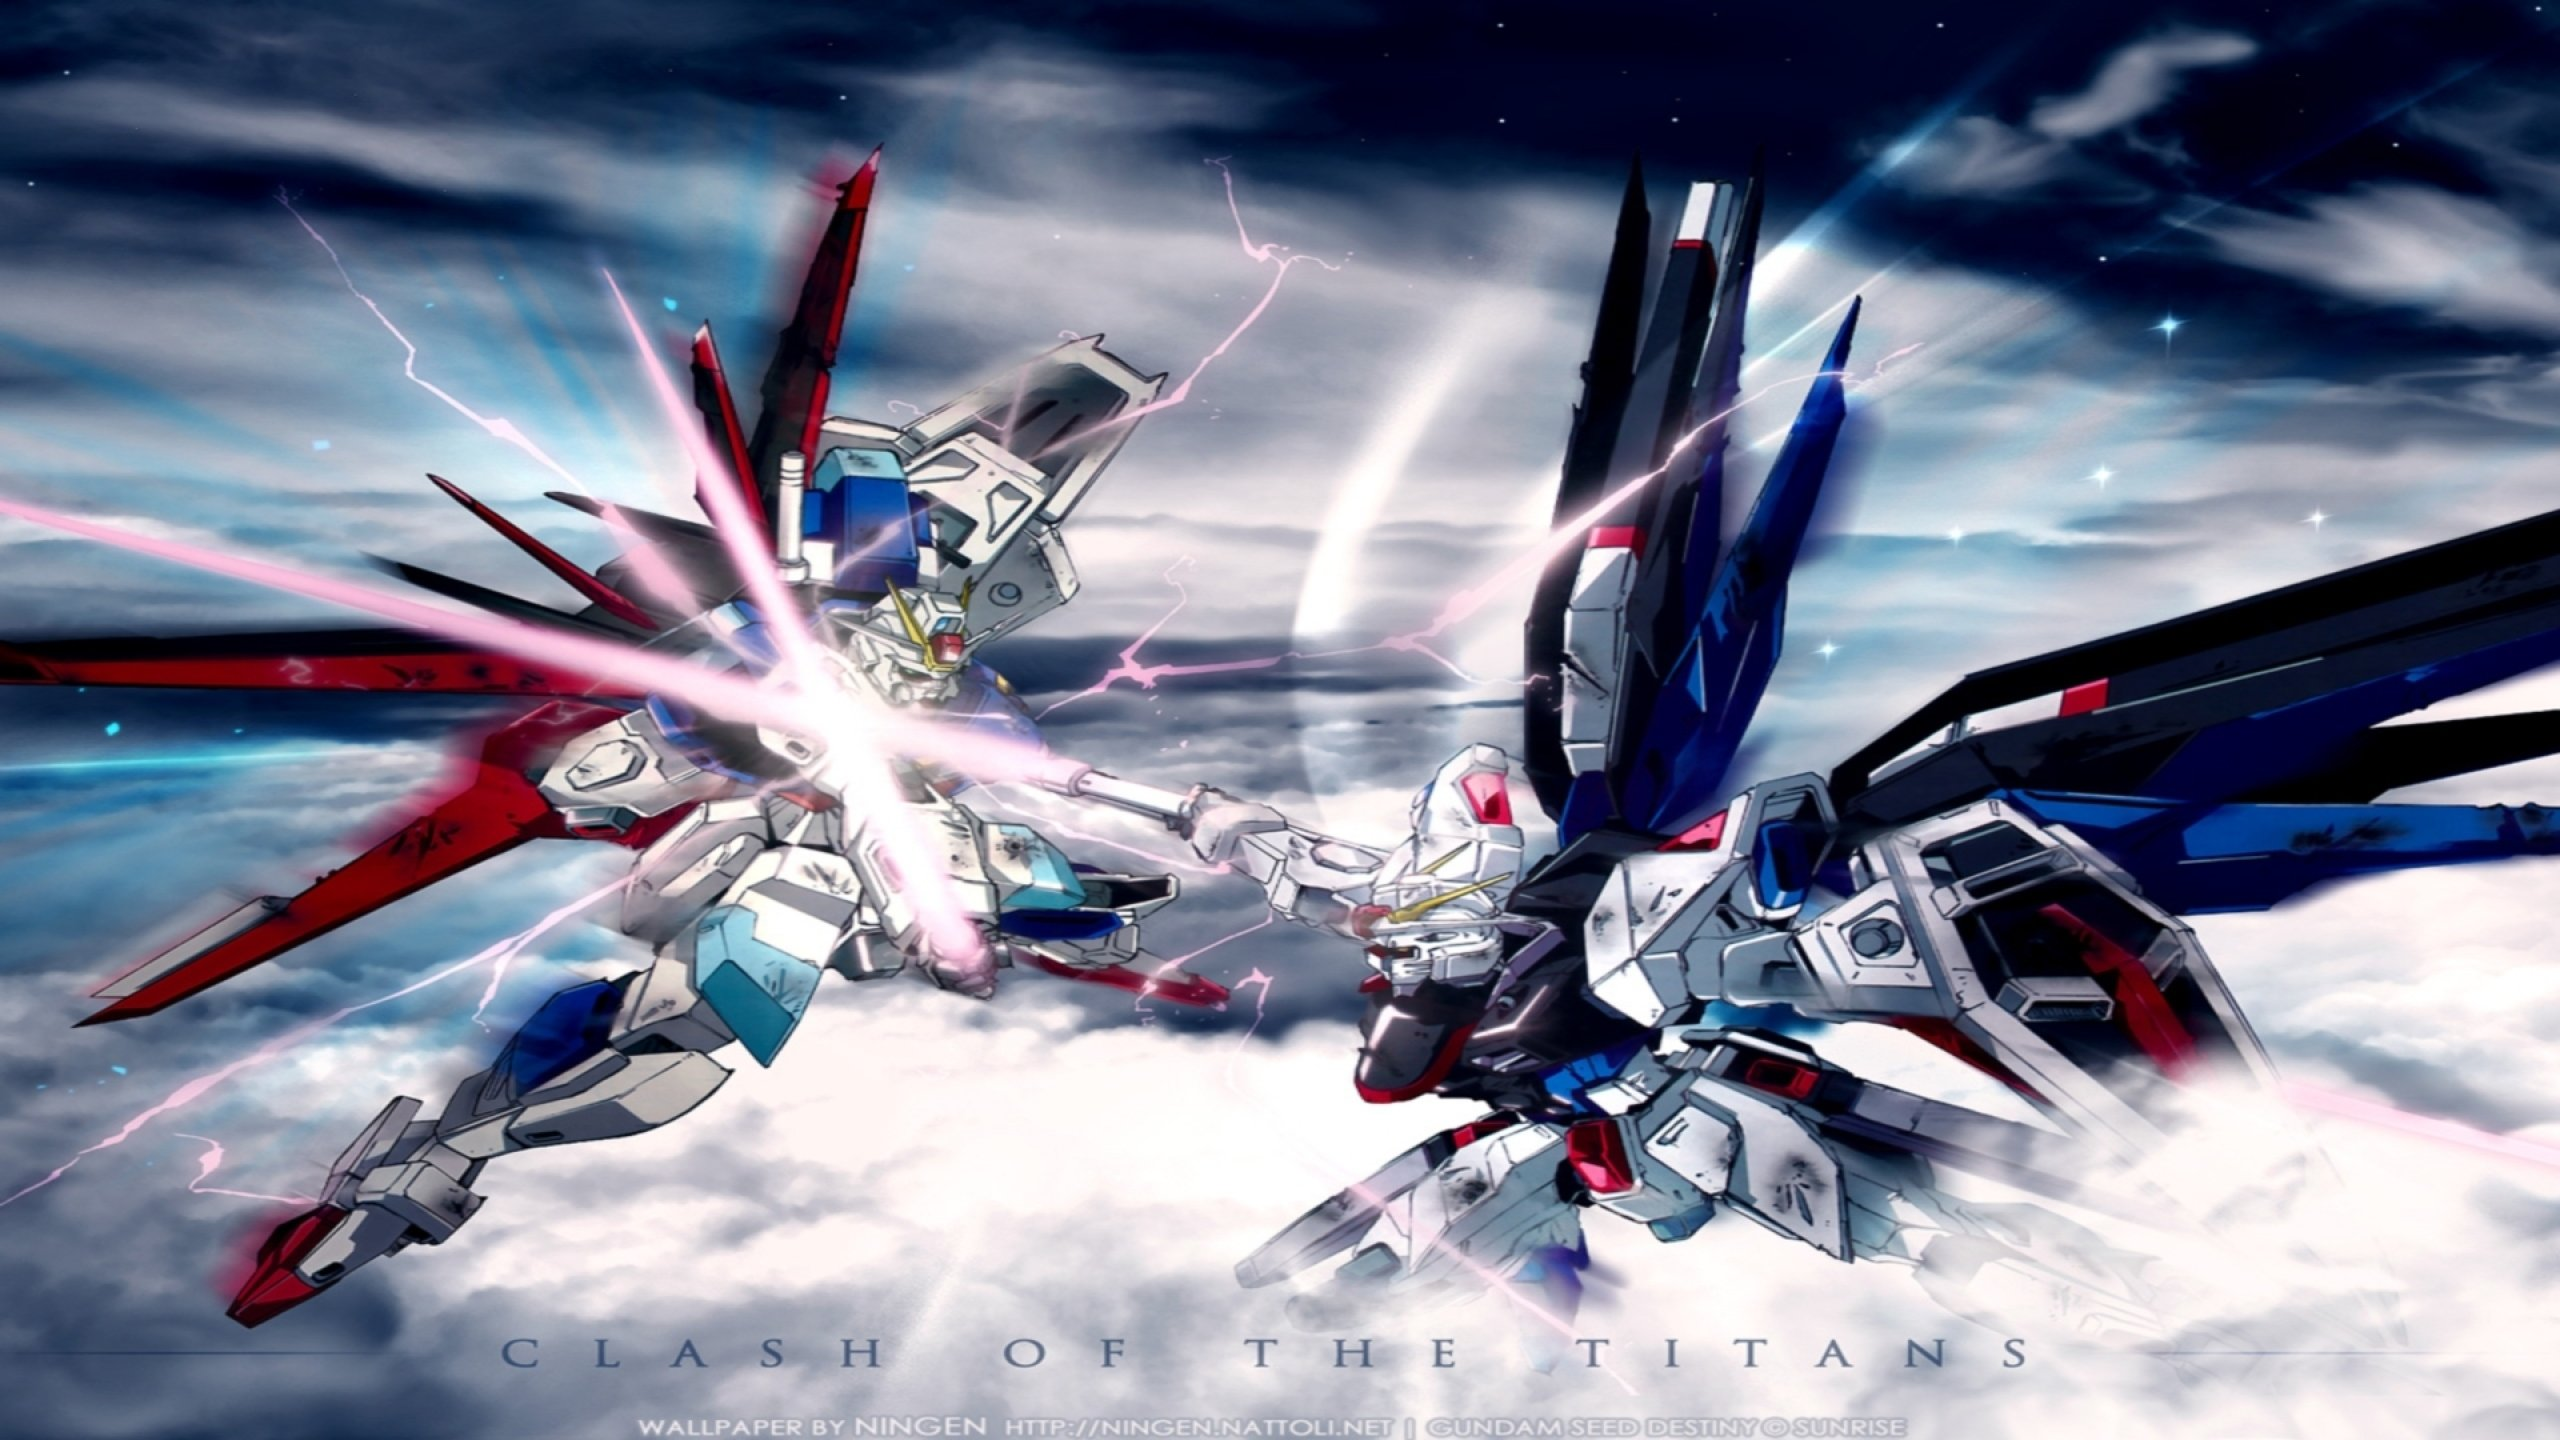 mobile-suit-gundam-seed-destiny-wallpapers-25986-7692049.jpg